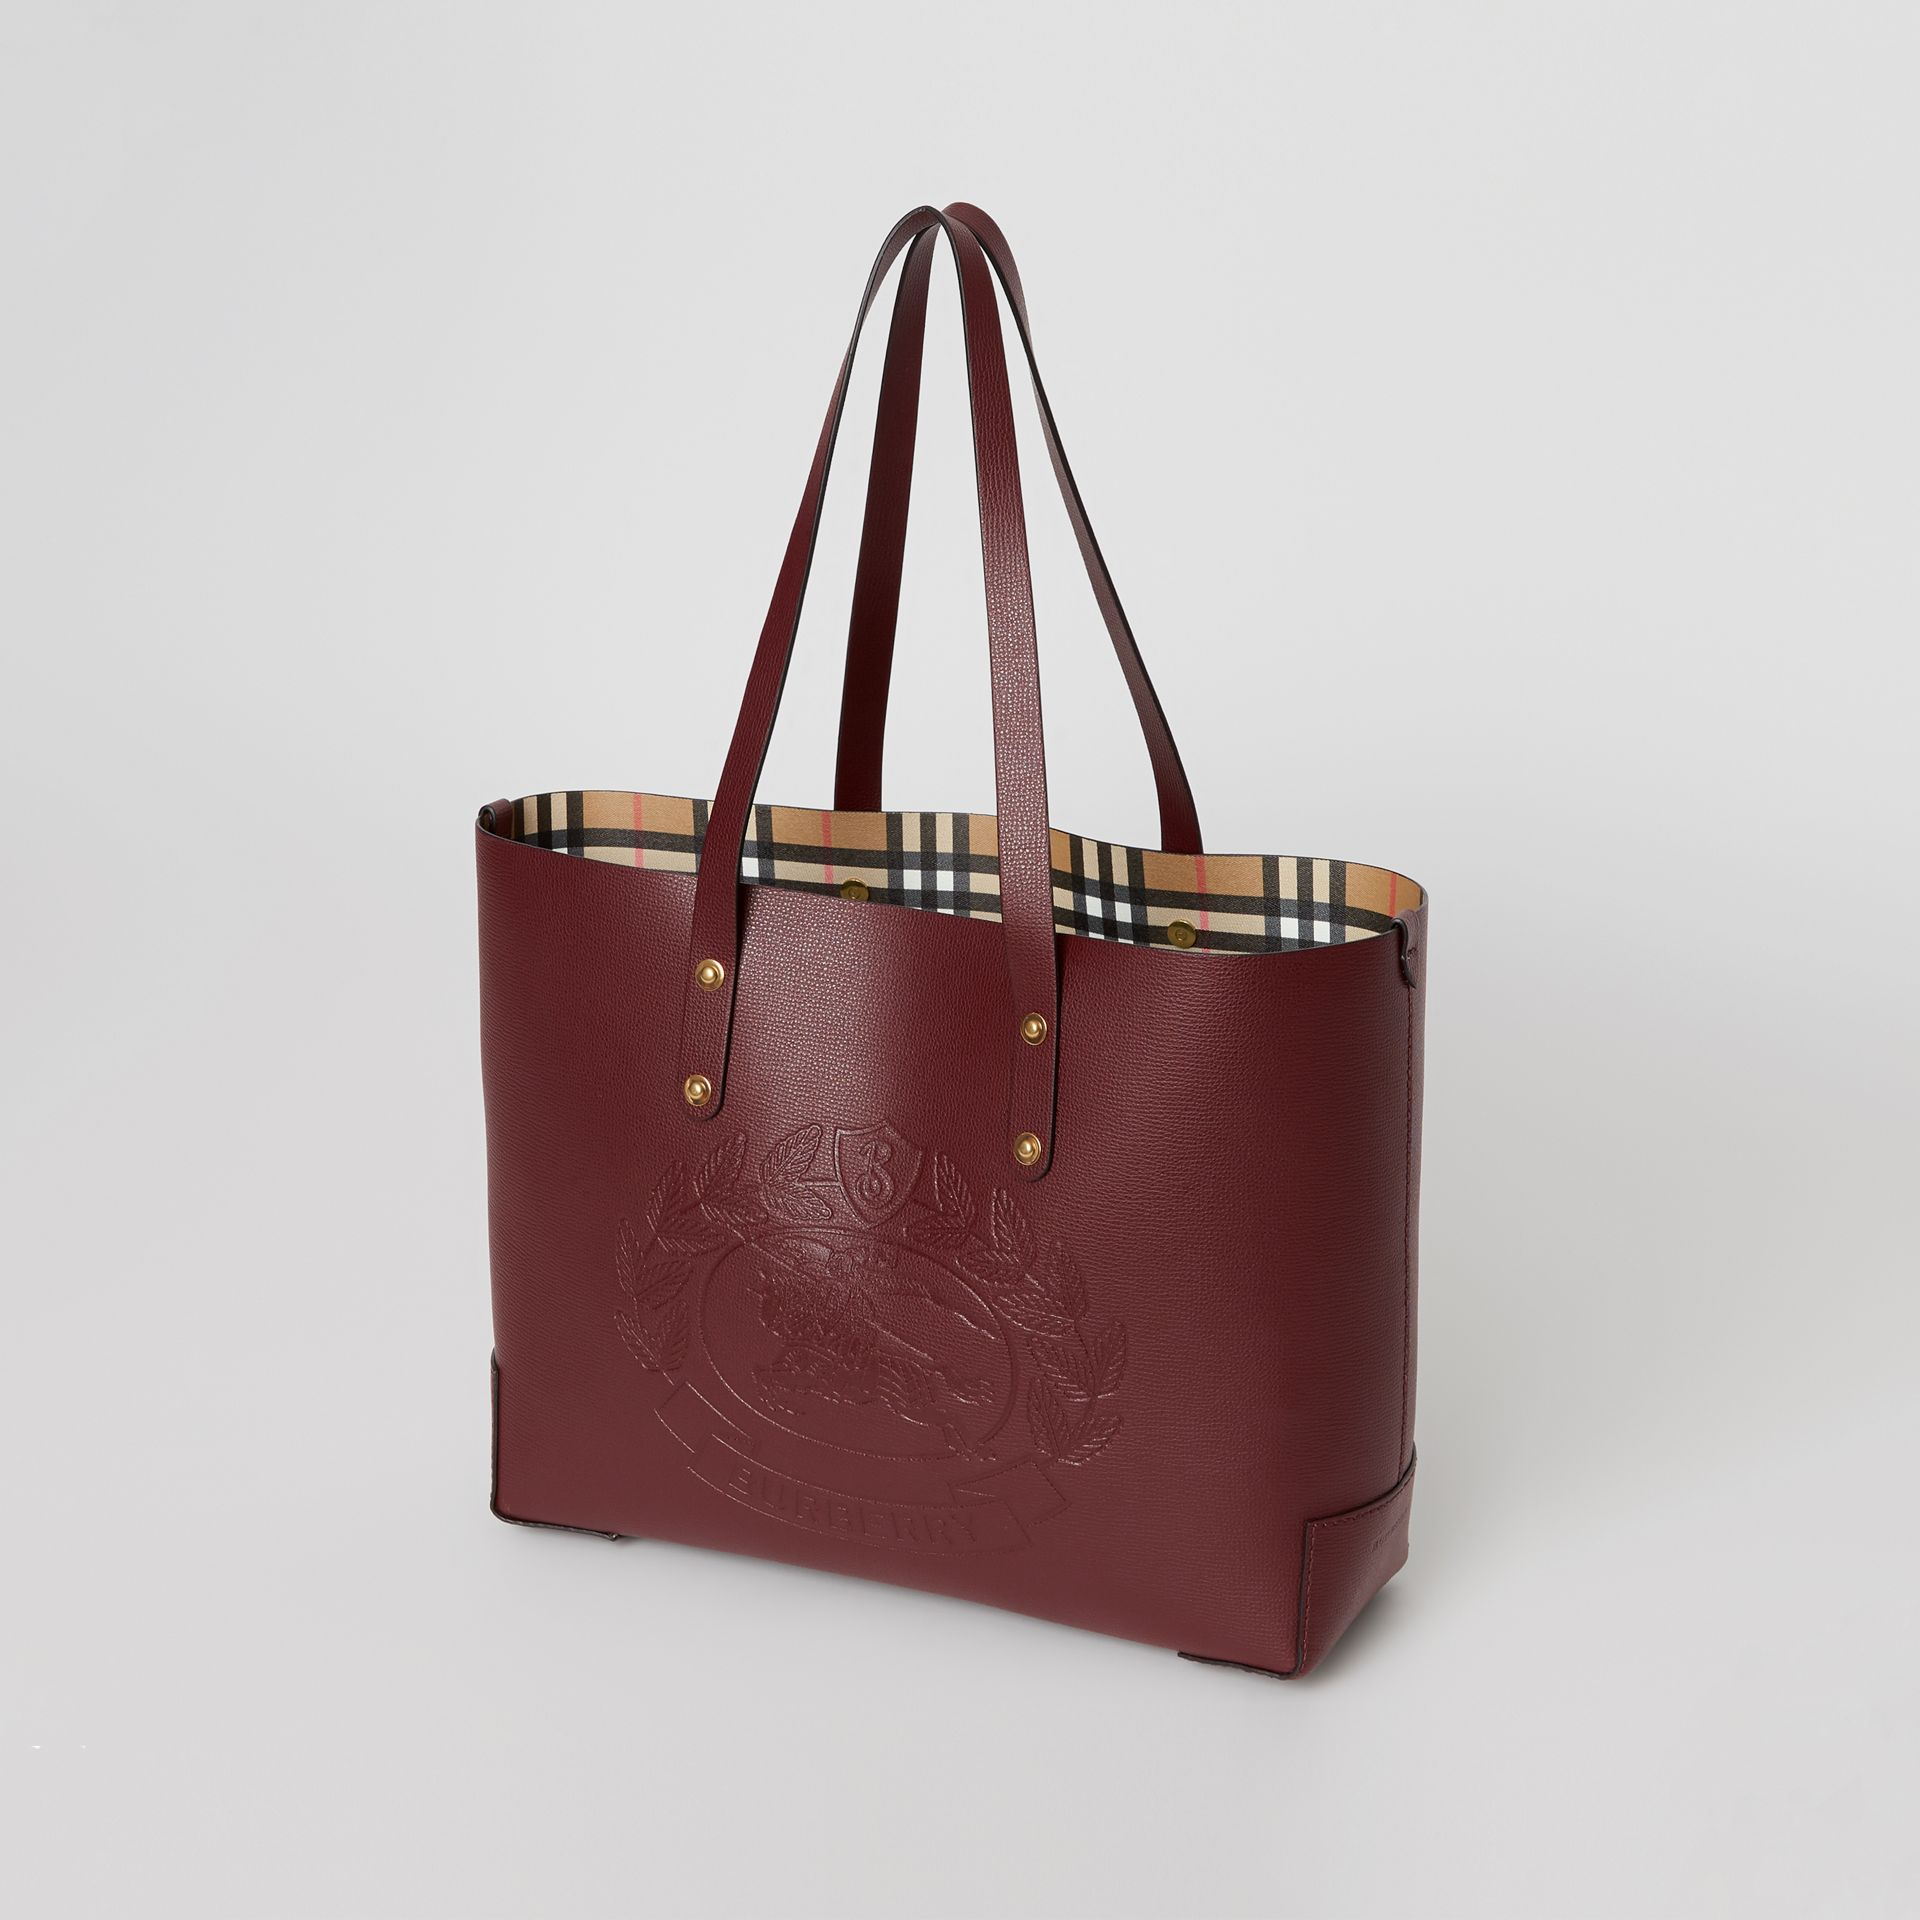 c4e882c32ea0 Burberry Small Leather Shoulder Tote Bag With Crest In Red